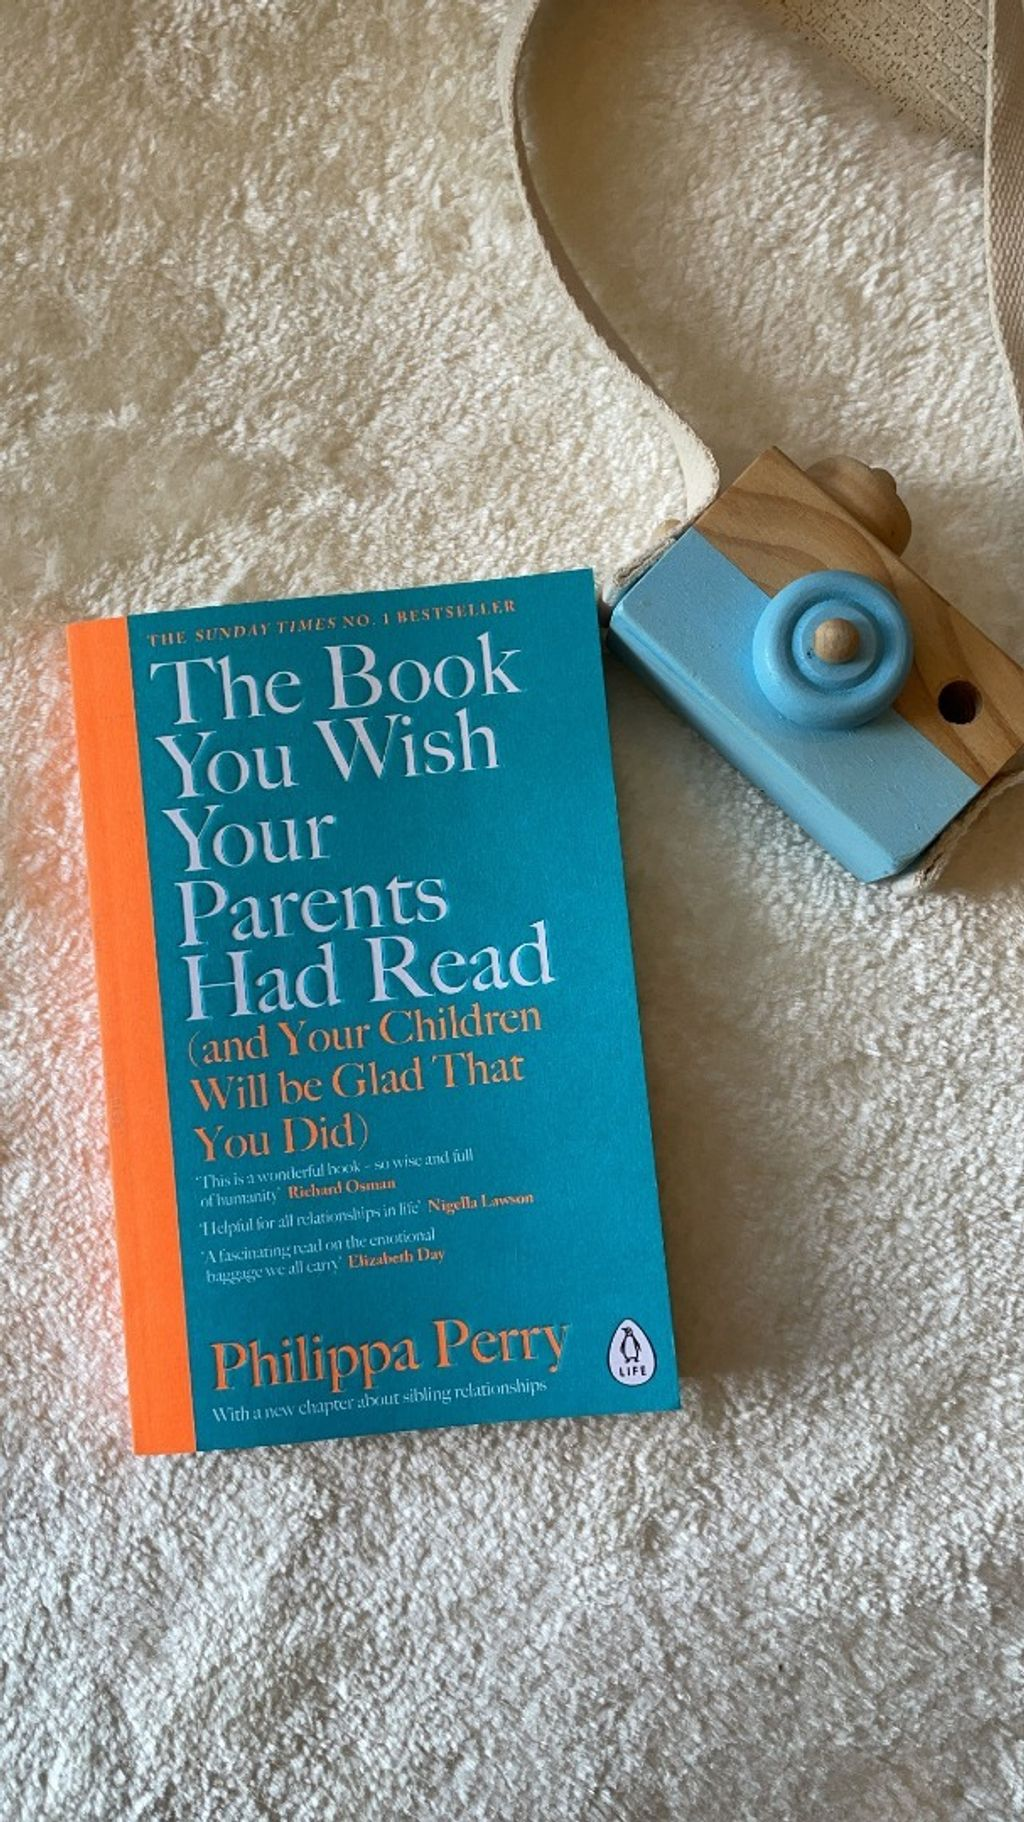 Book you wish your parents had read.jpeg